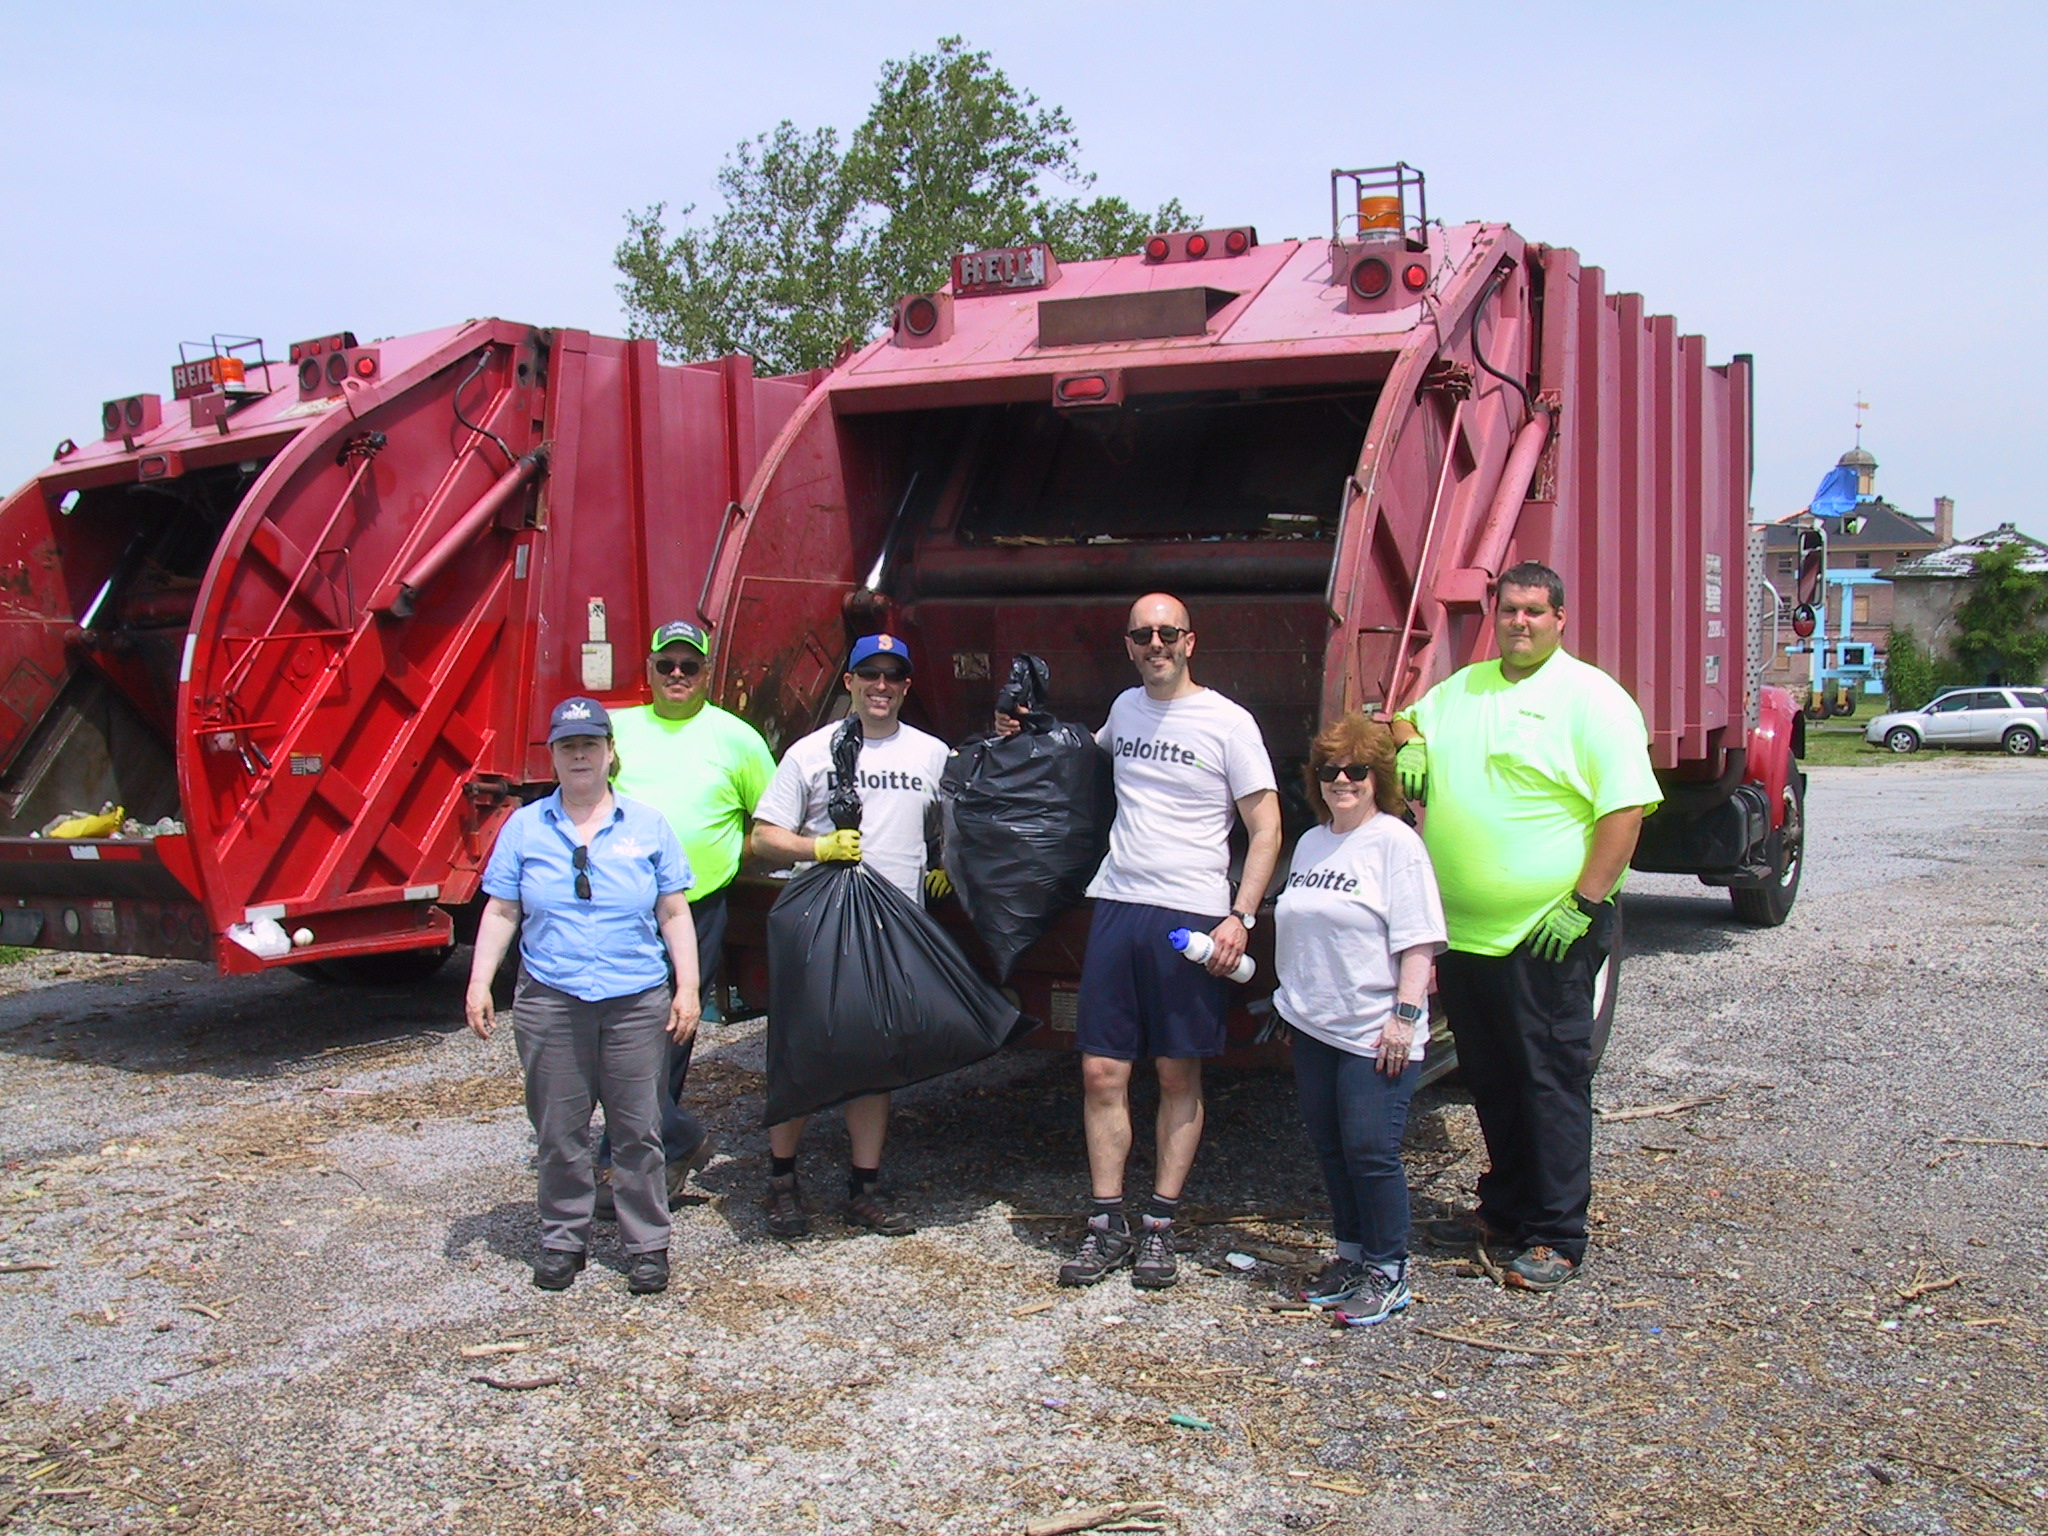 Staff from Tinicum Township (green shirts), Deloitte, and Sea Grant (far left) loaded trash and recyclables collected from Little Tinicum Island.  Many thanks to all who made Friday's Little Tinicum Island clean-up so successful!